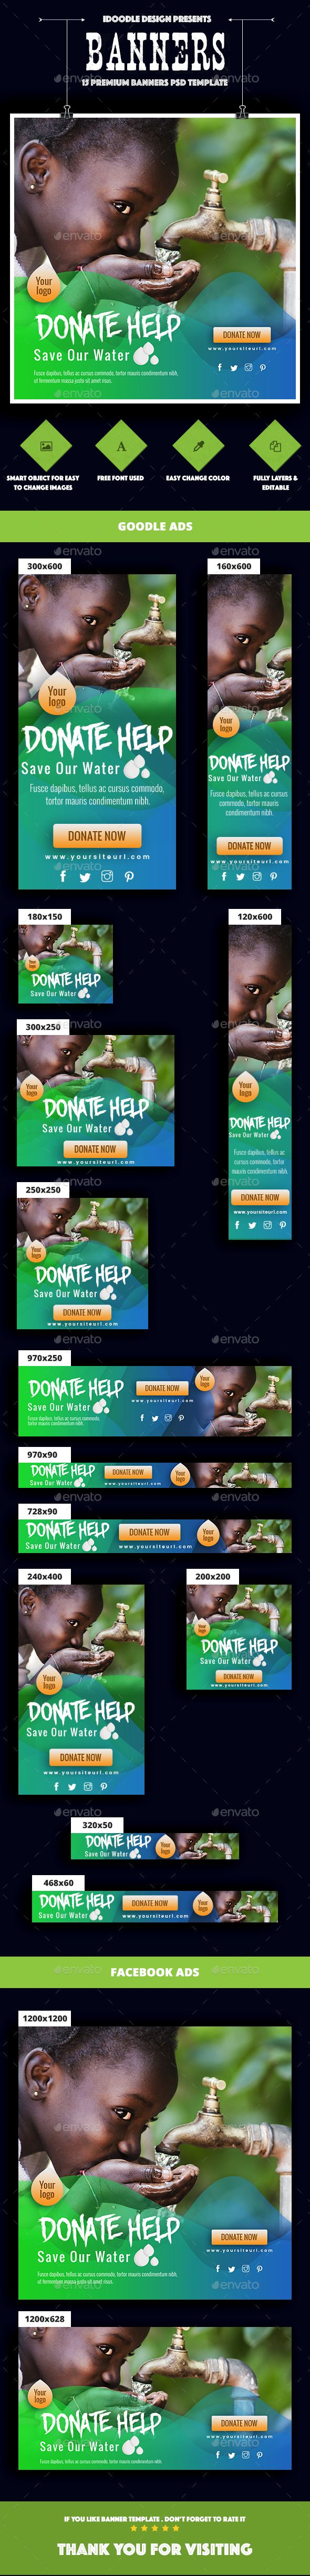 nonprofit ngo charity fundraising banner ads template psd